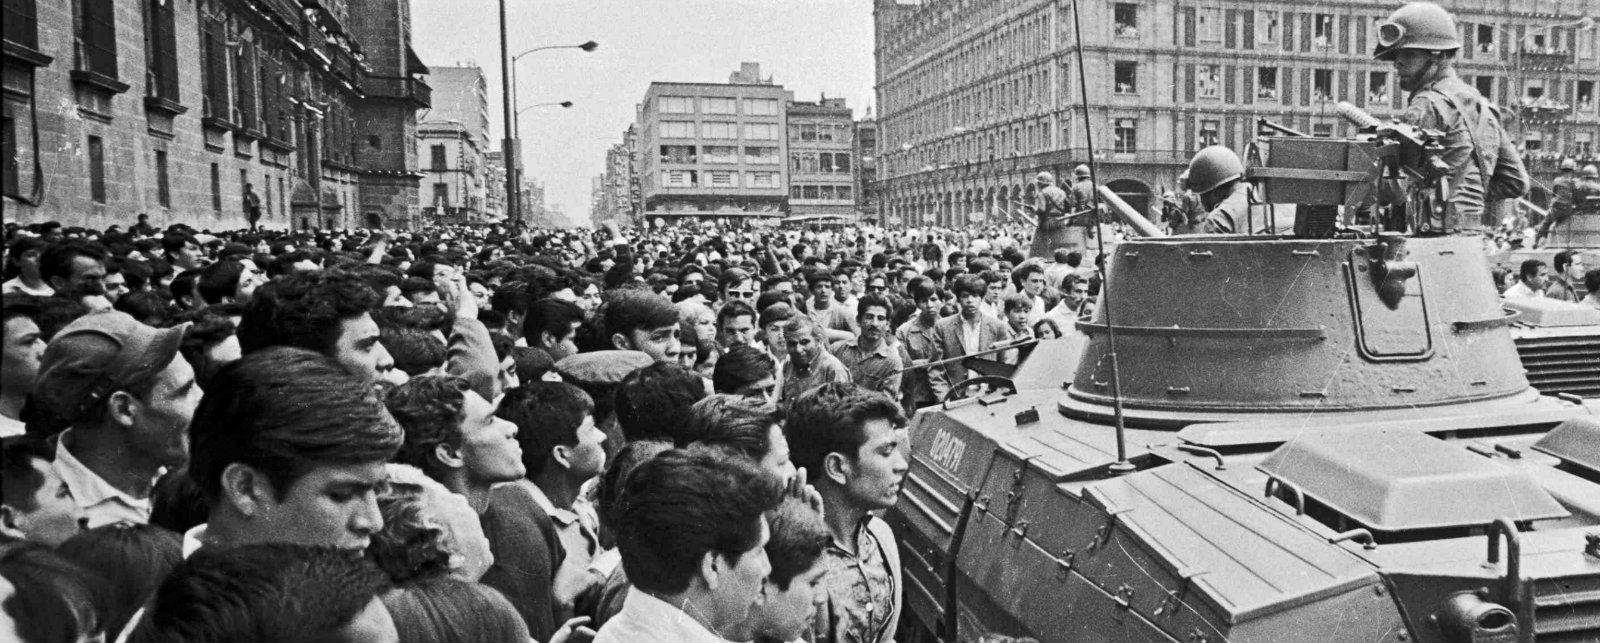 Why did students and workers protest in 1968?